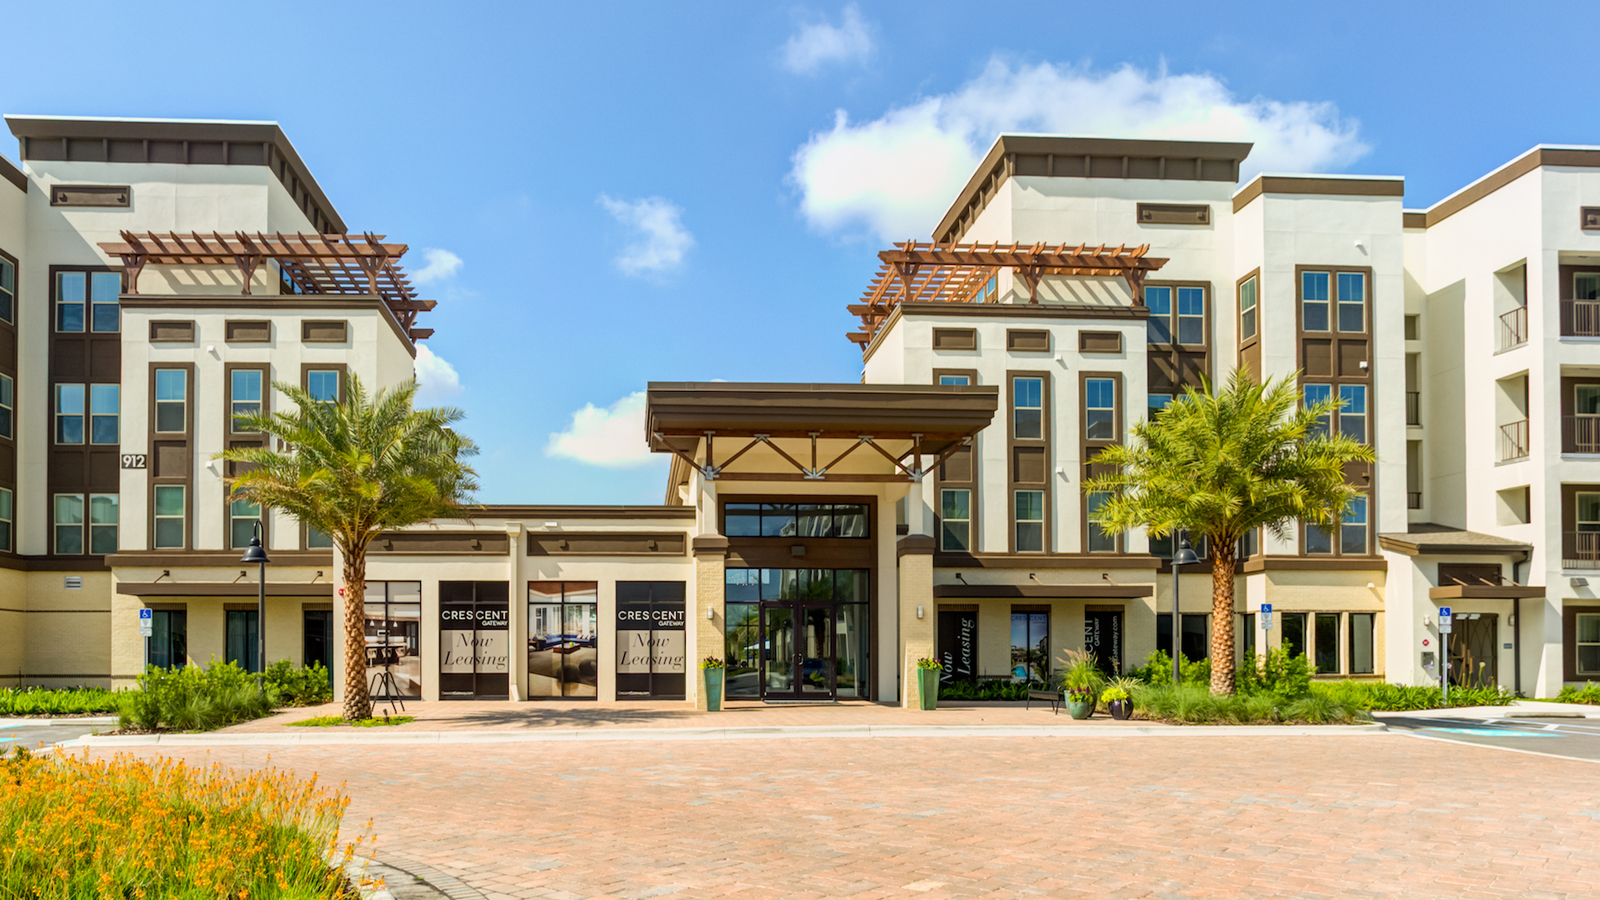 Gateway Apartments - Service - National Green Building Standard Certification: Multi-Family (NGBS Bronze)327,268 sq/ft 249 unitsBuilt by Crescent Communities, and formerly known as Altamonte Gateway apartments, Nine12 Gateway apartments is an exquisite community that sits just north of a bustling Orlando, Florida. Within this community, you can find all the ingredients for a modern lifestyle with the perfect blend of ideal location, abundant amenities, and first-class features. Inside the apartments you will find GE Energy Star® stainless steel appliances and water efficient bathroom accessories that have led this community to achieve energy savings of 24.73% above 2006 IECC baselines. During the construction of this apartment, a waste management plan was put into place with the goal of recycling a minimum of 50% of all construction waste.